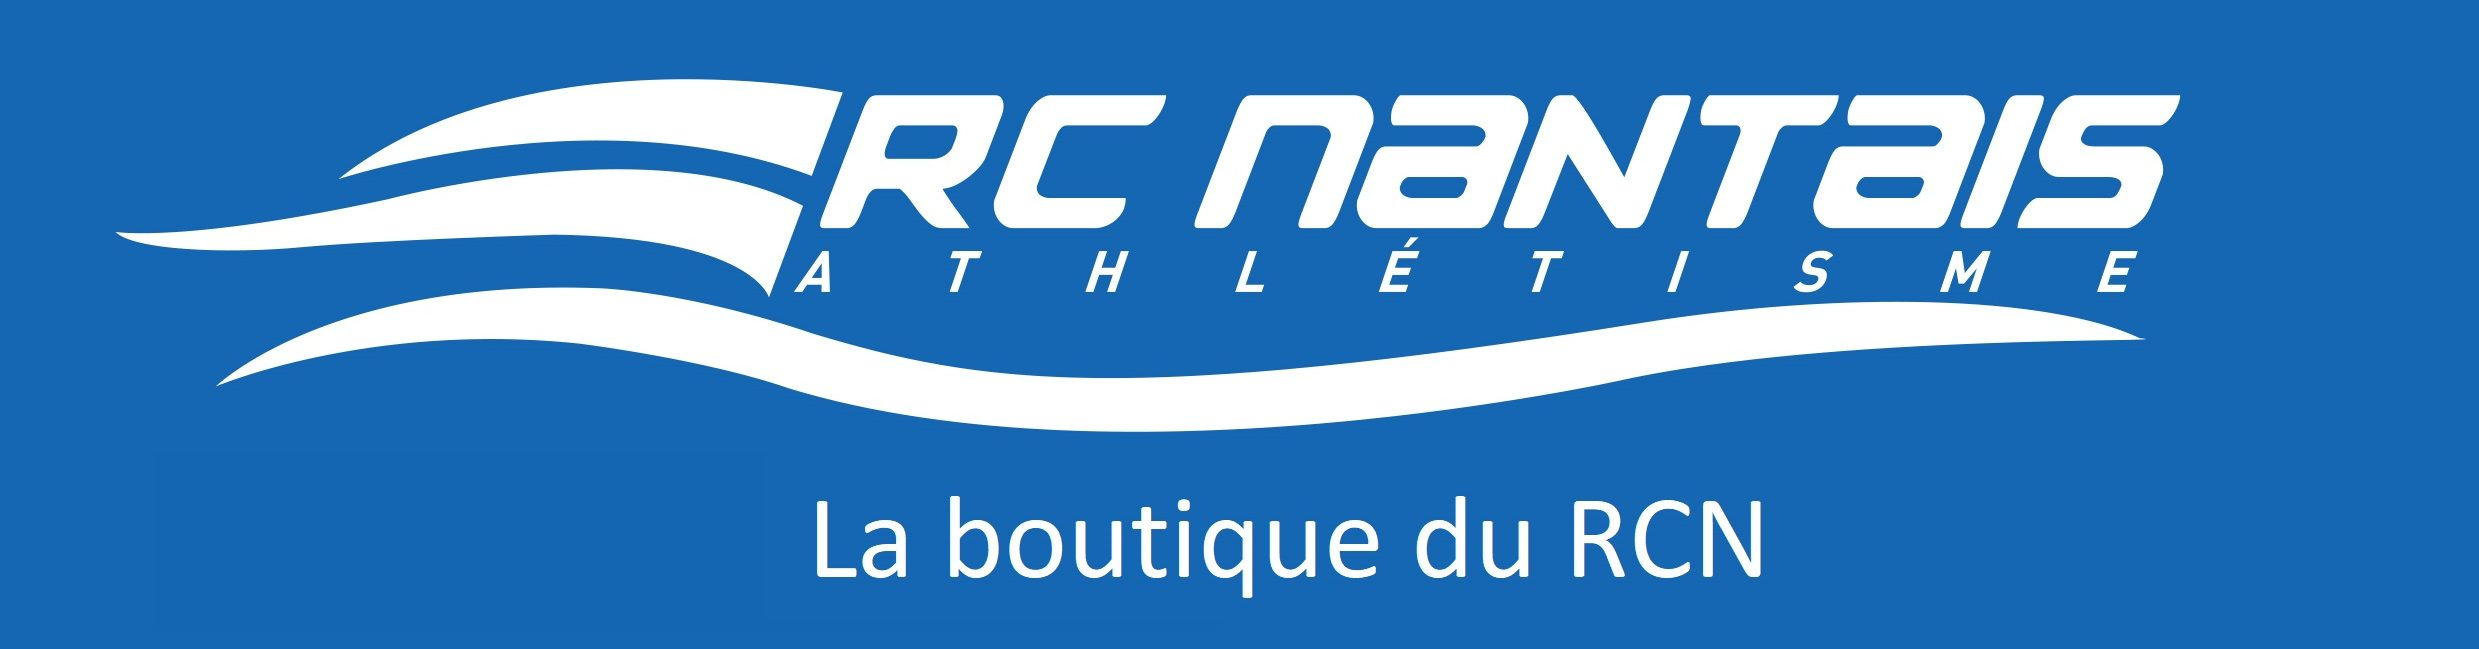 La Boutique du RCN